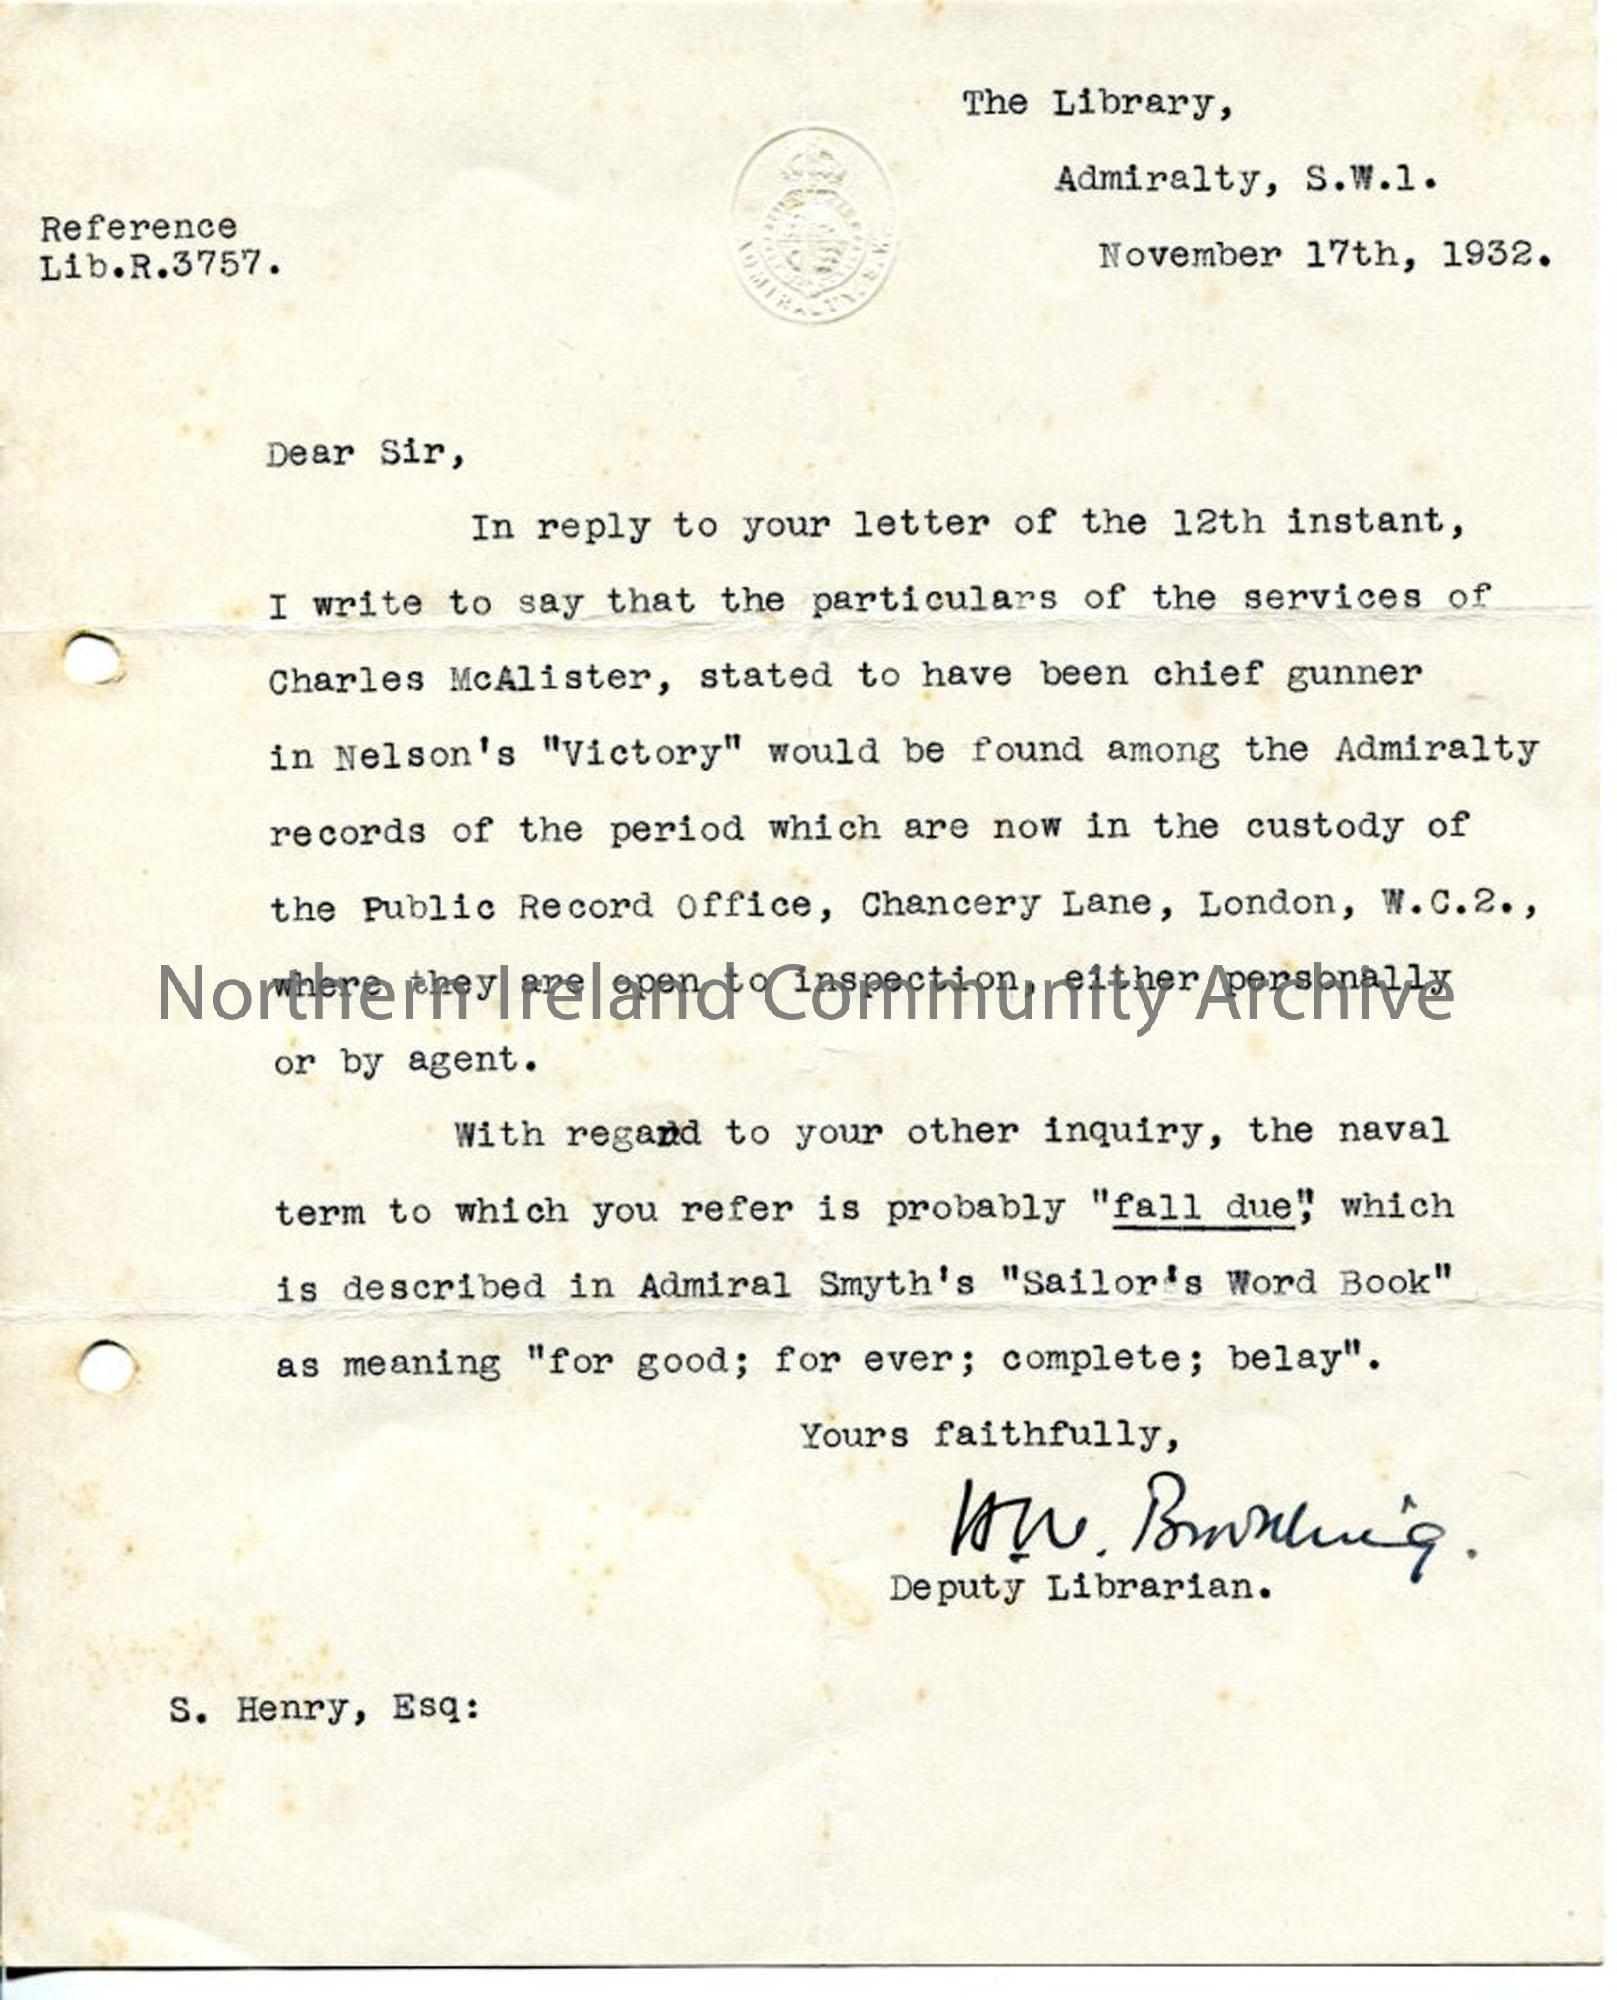 Letter from H. W. Browning, 17.11.1932